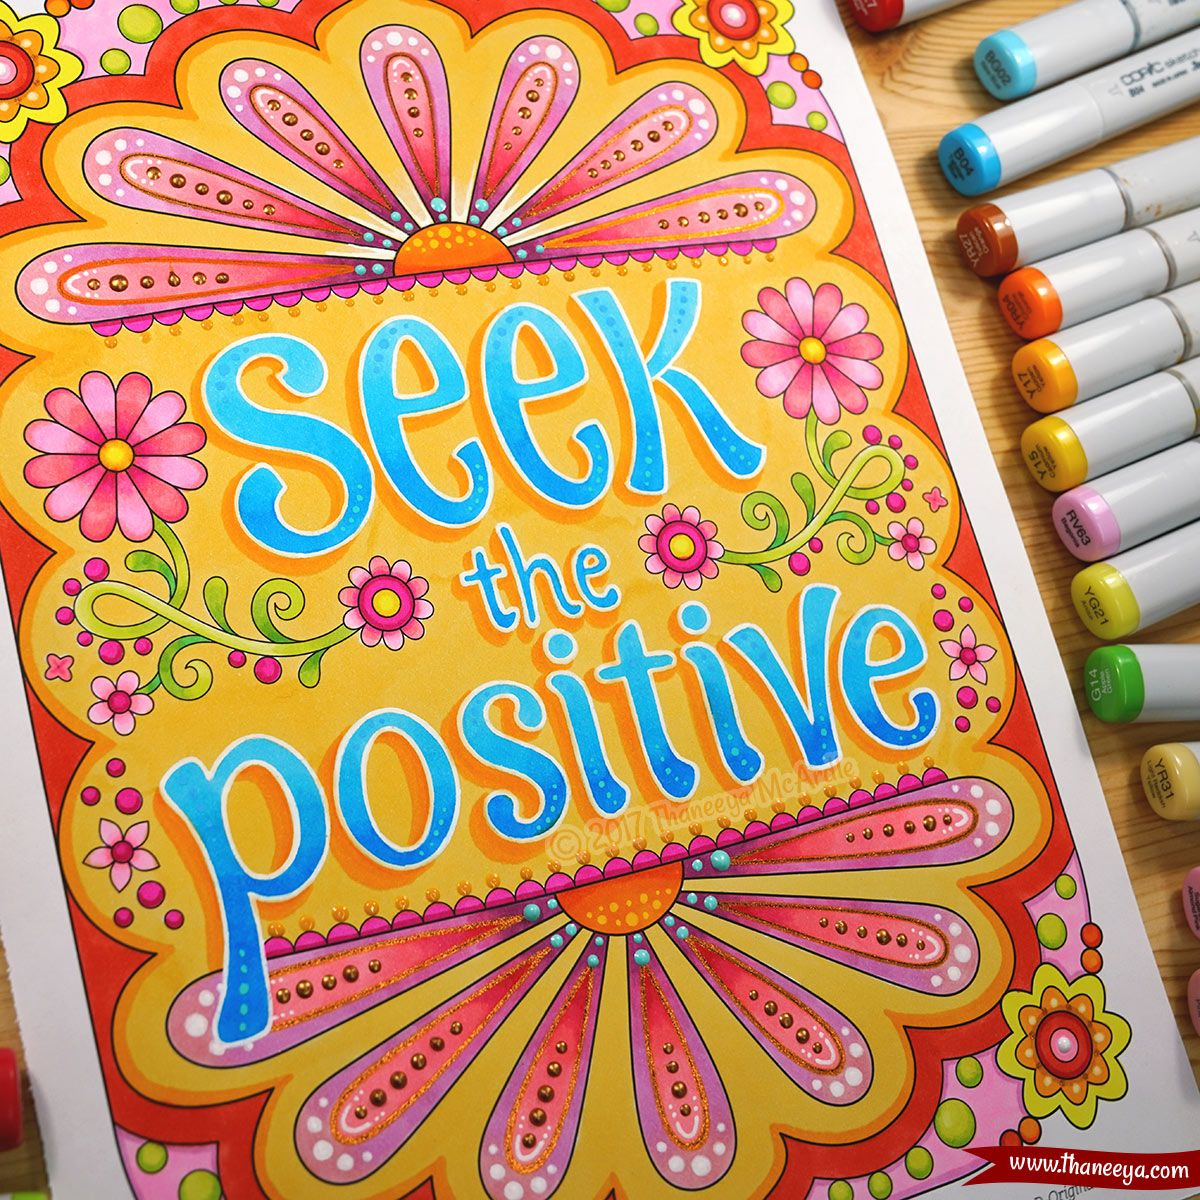 Seek The Positive Coloring Page One Of The Extra Pages In The Target Exclusive Edition Of Thaneeya Coloring Books Coloring Book Pages Quote Coloring Pages